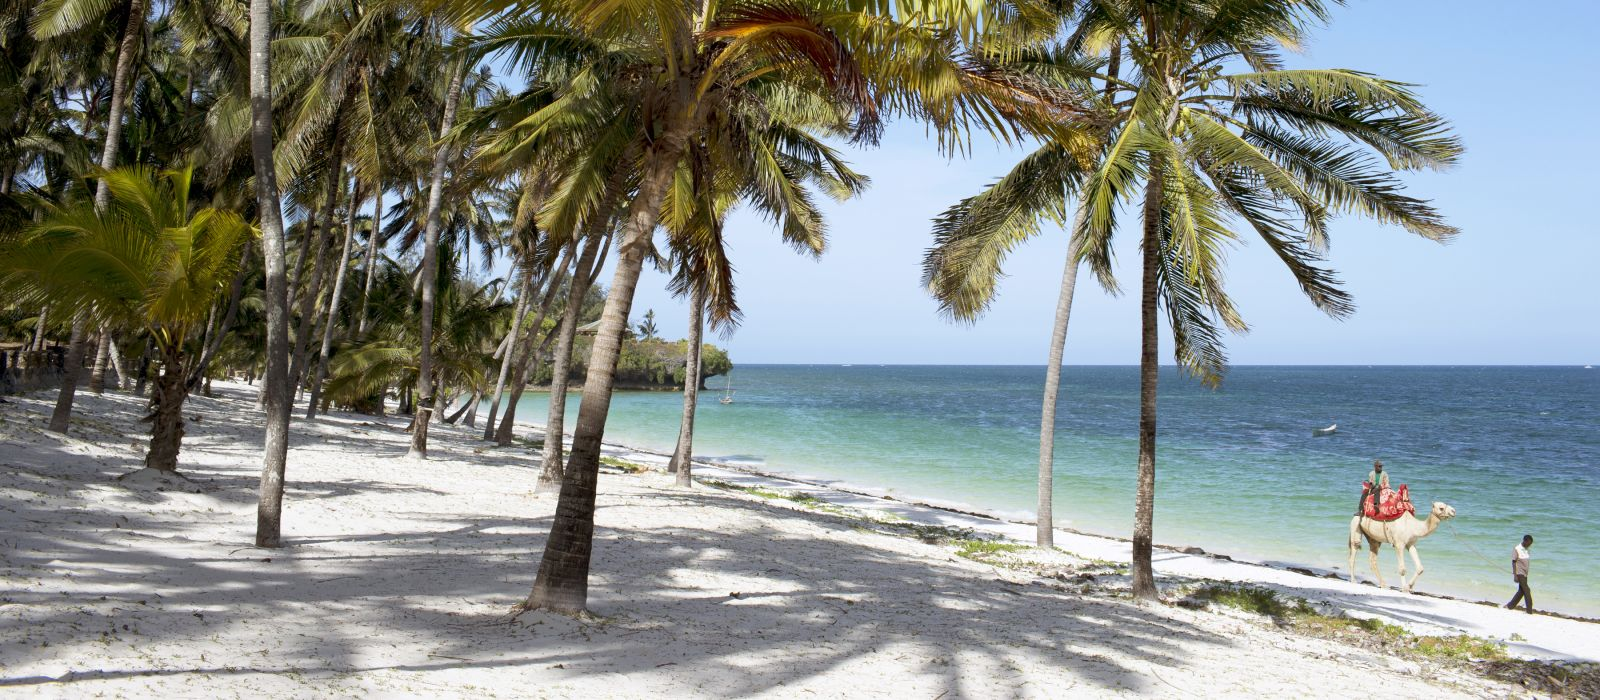 Beautiful beach with palms in Kenya, Africa